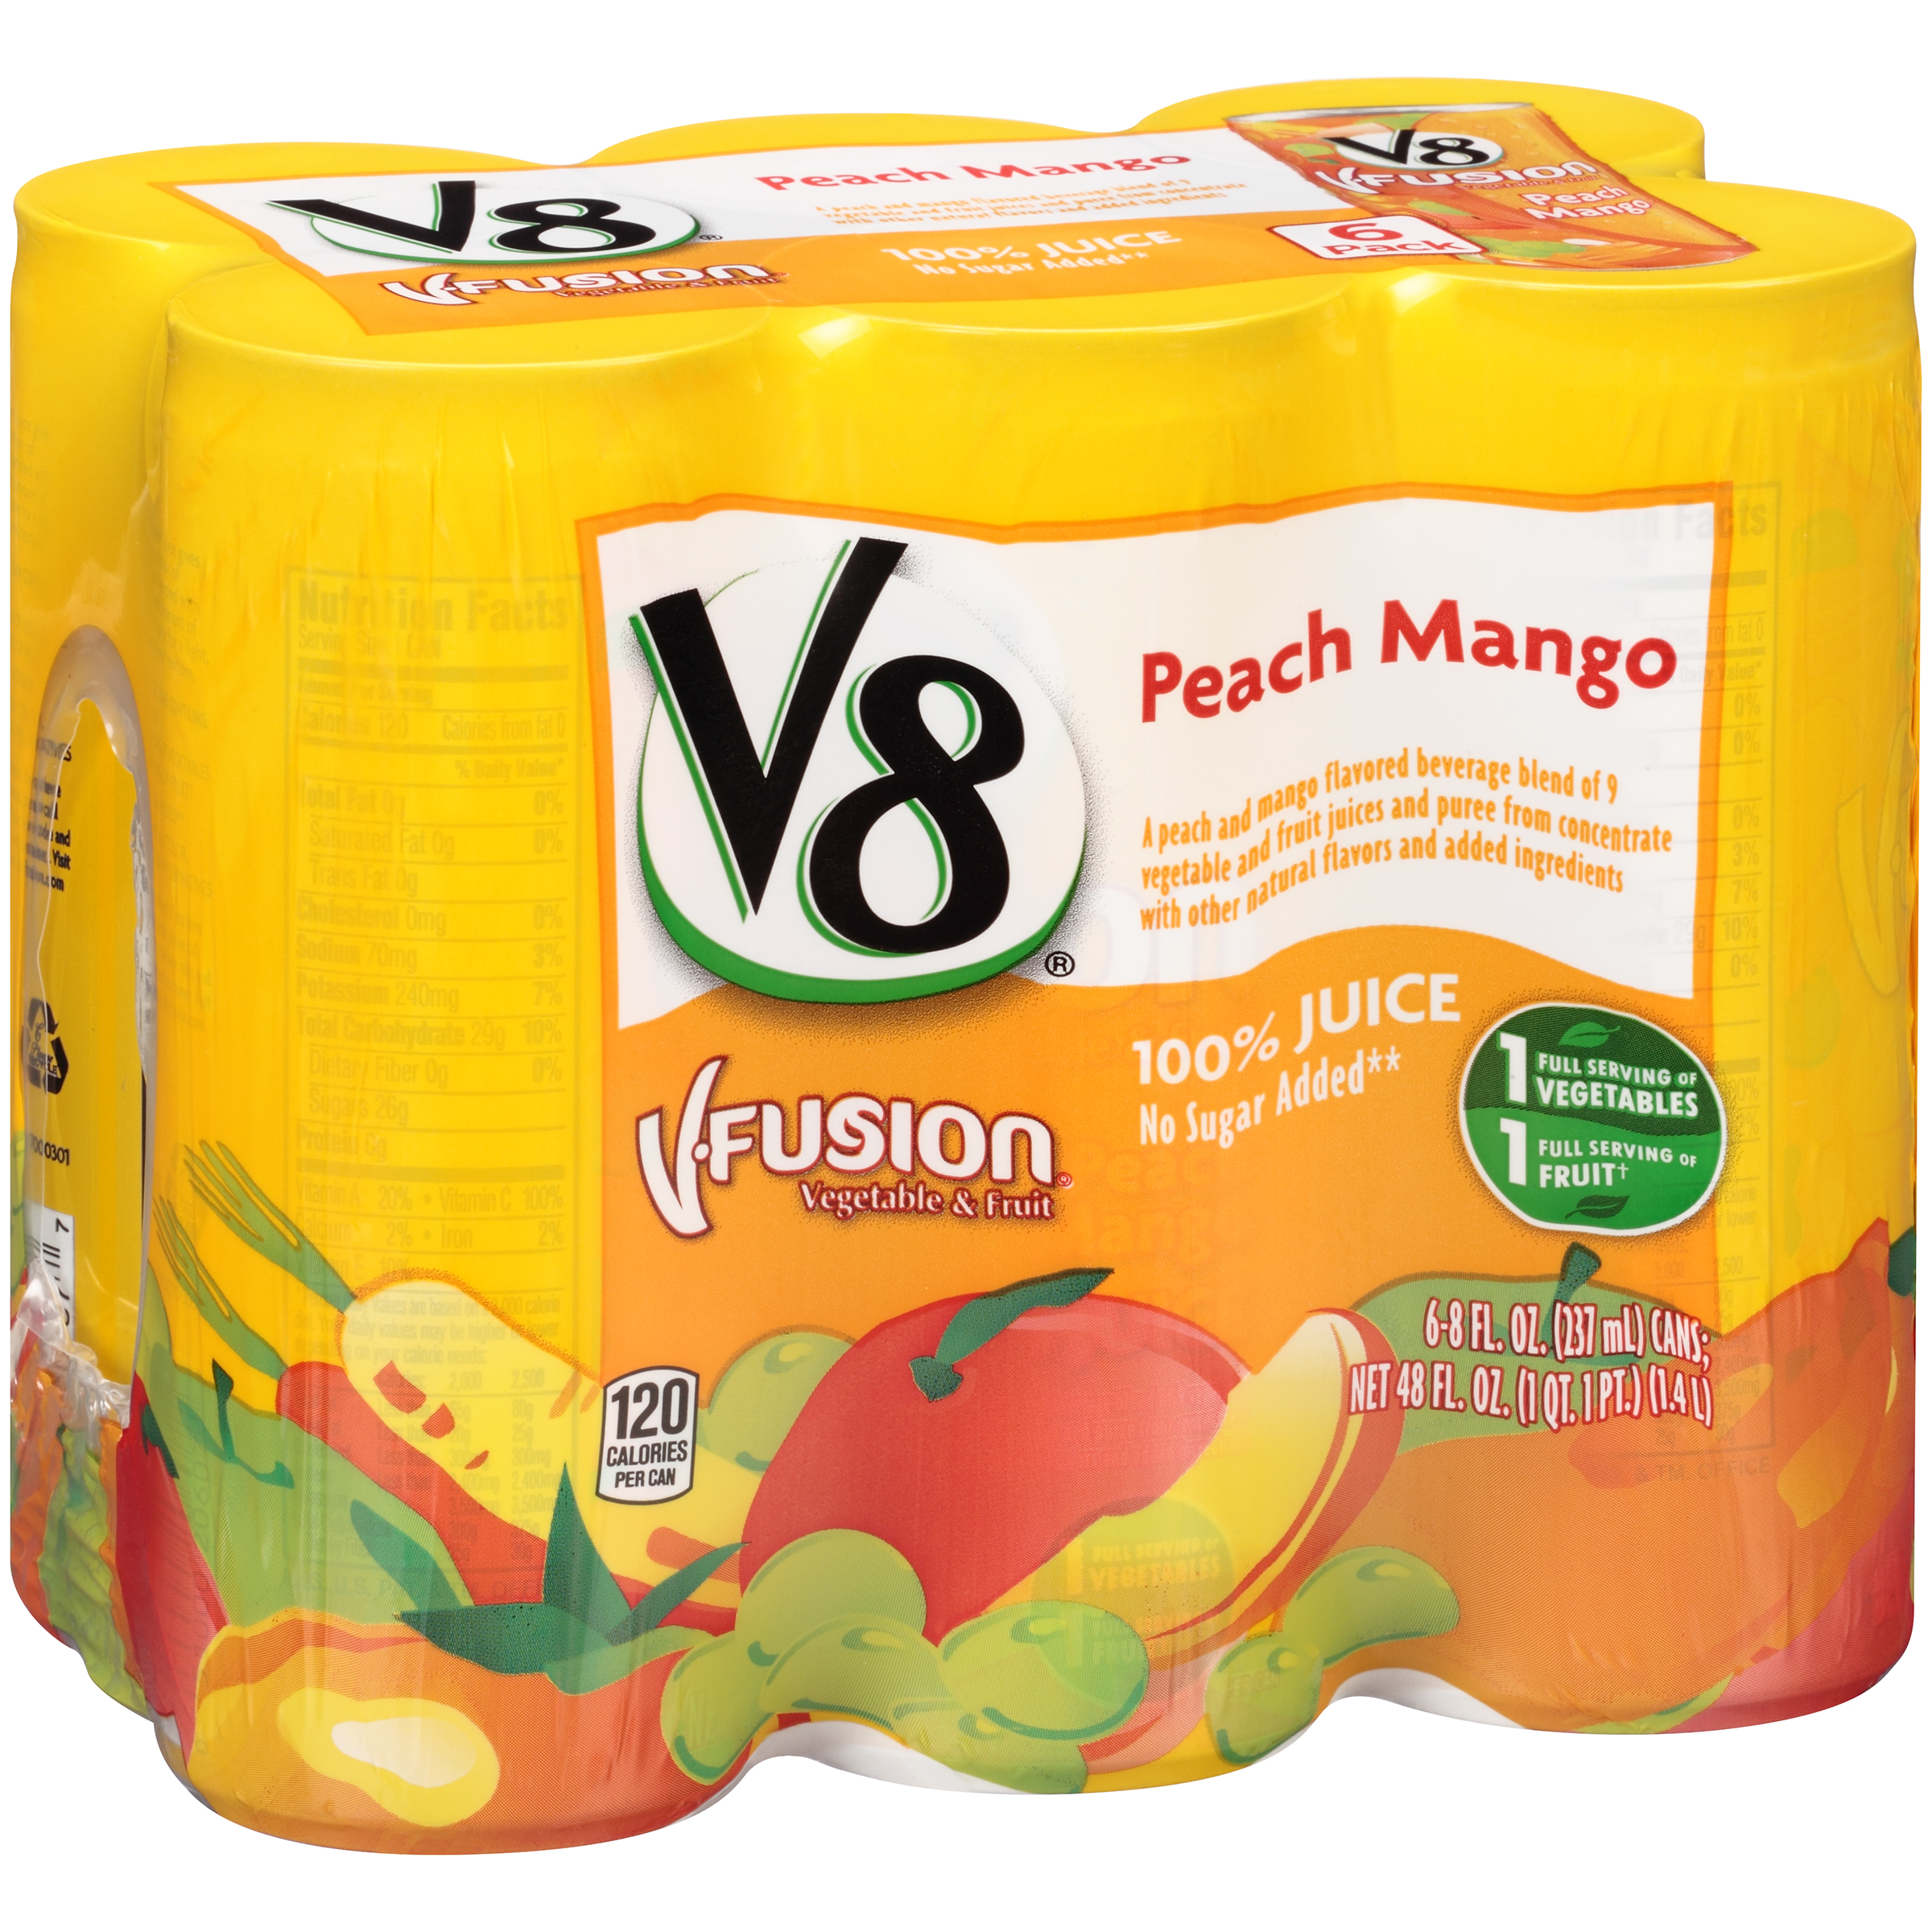 V8 V-Fusion Peach Mango Fruit & Vegetable Juice 8oz 6 pack